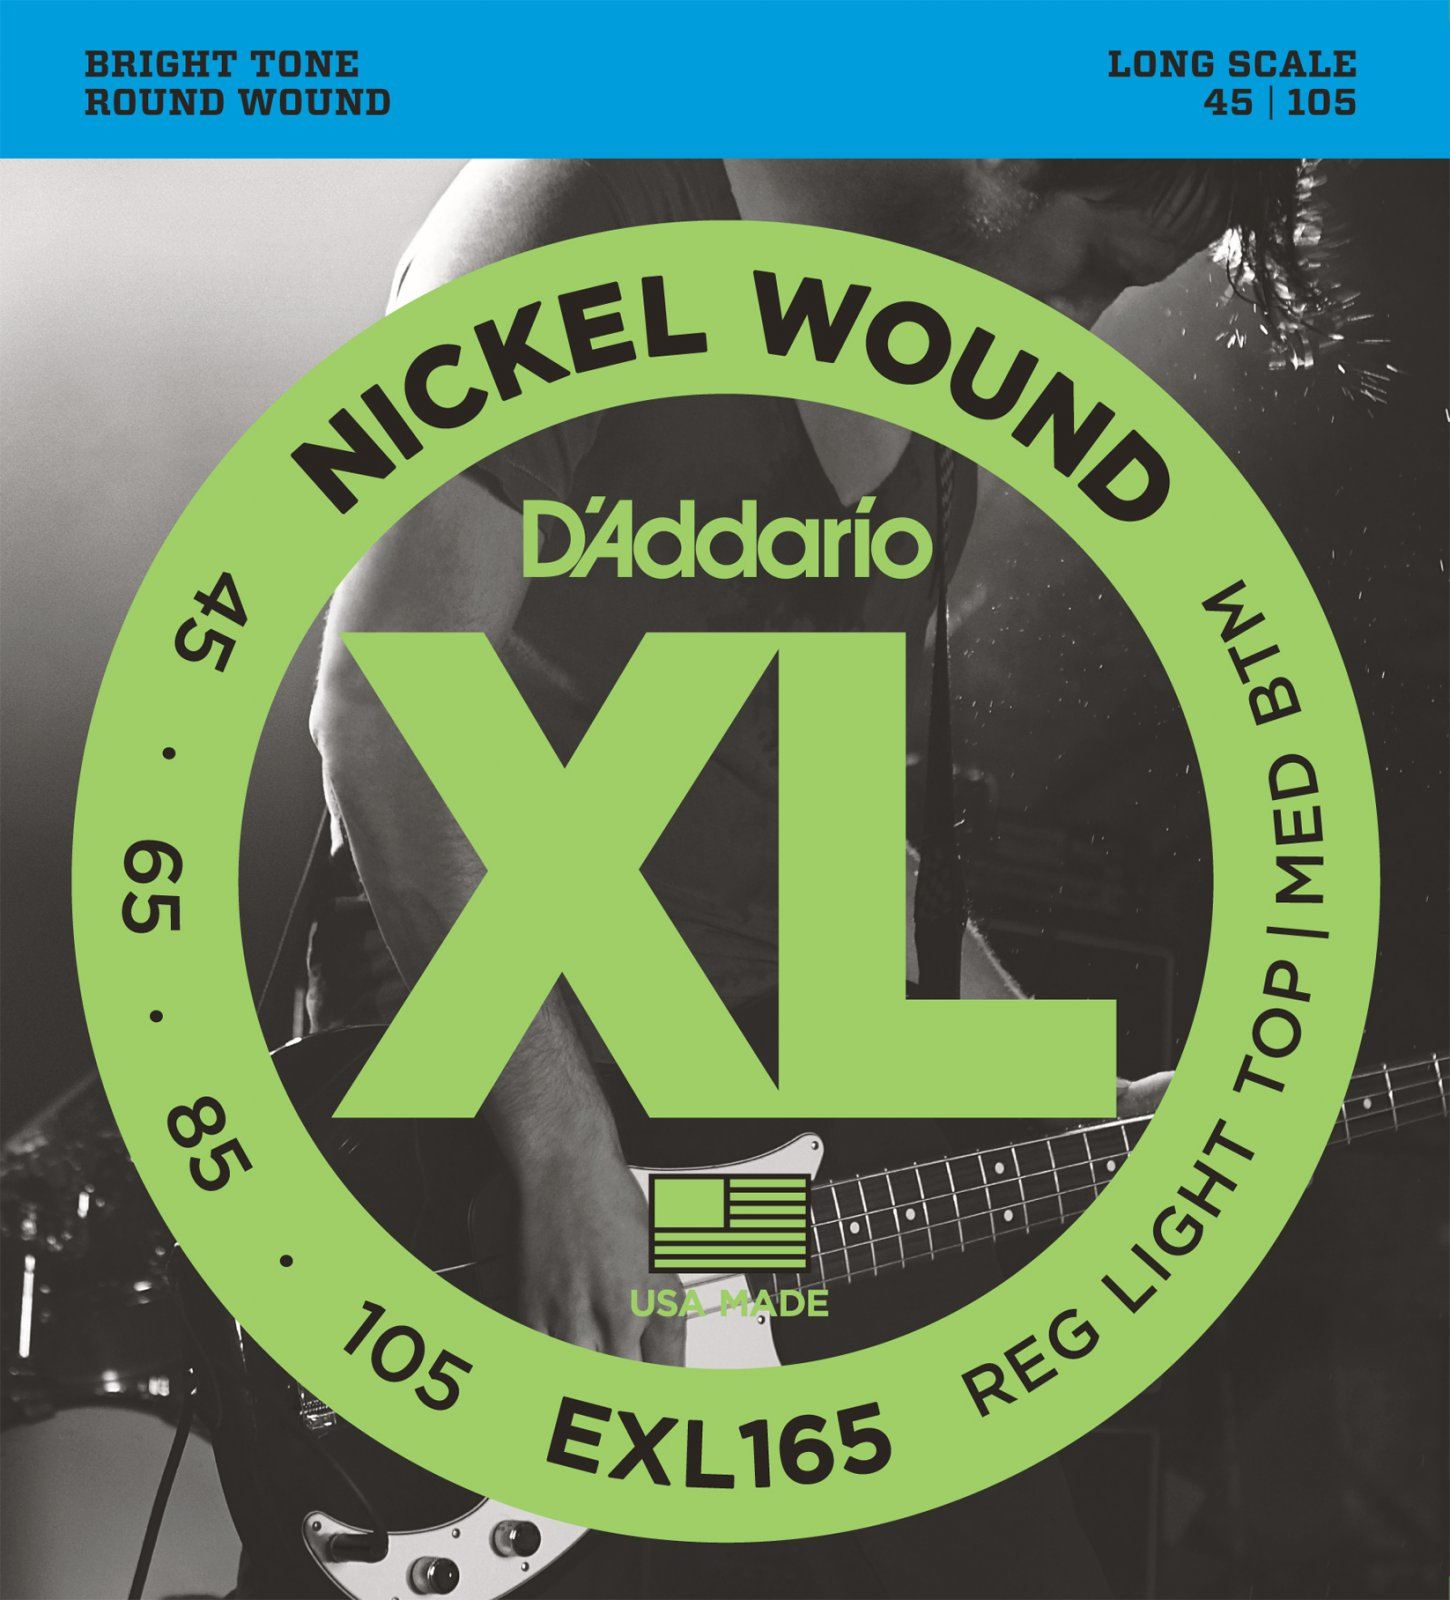 D'Addario XL Nickel Wound EXL165 Bass Guitar Strings, Long Scale, Custom Light, 45-105